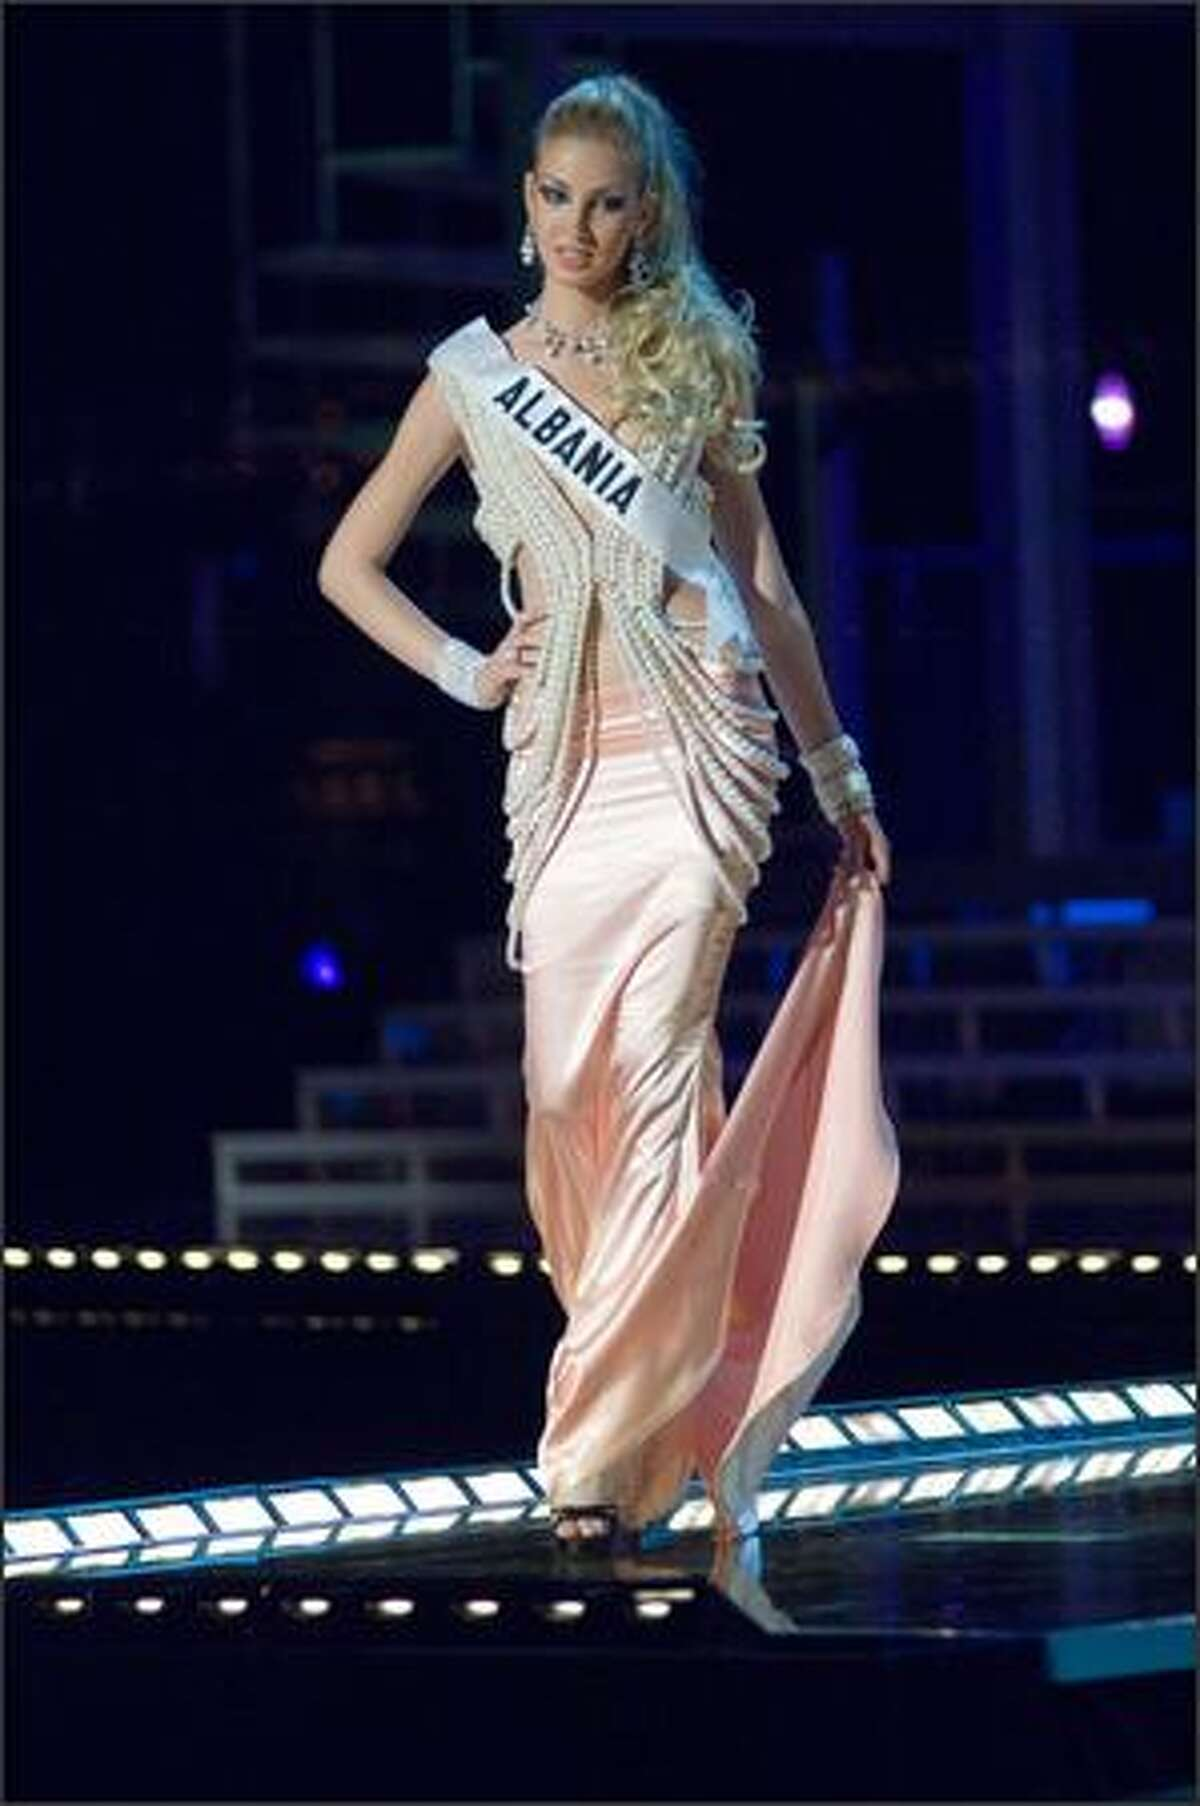 Sadina Alla, Miss Albania 2007, competes in an evening gown of her choice during the 2007 Miss Universe Presentation Show at Auditorio Nacional in Mexico City on May 23. During the Presentation Show, each is judged by a preliminary panel of judges in individual interview, swimsuit and evening gown categories. The scores will be tallied and the top 15 contestants will be announced during the broadcast of the finals on May 28 (9 p.m. Pacific, tape-delayed).